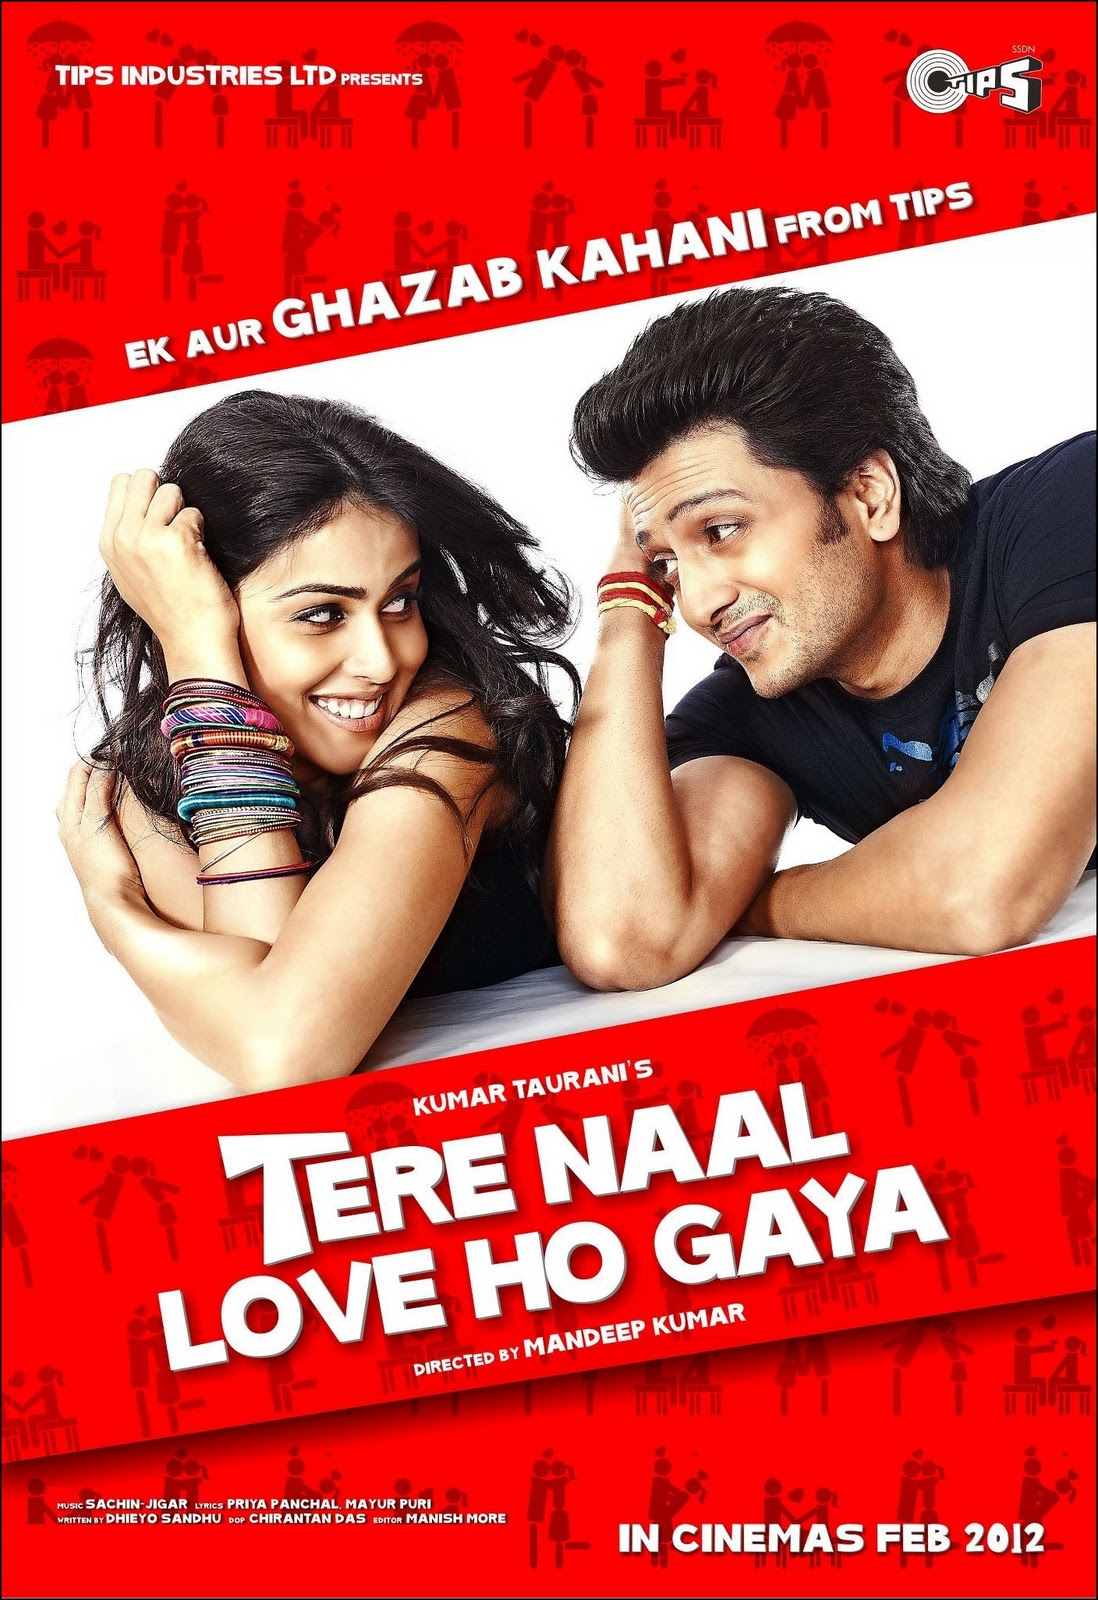 Tere Naal Love Ho Gaya Lyrics, Mp3 & Video Songs Download